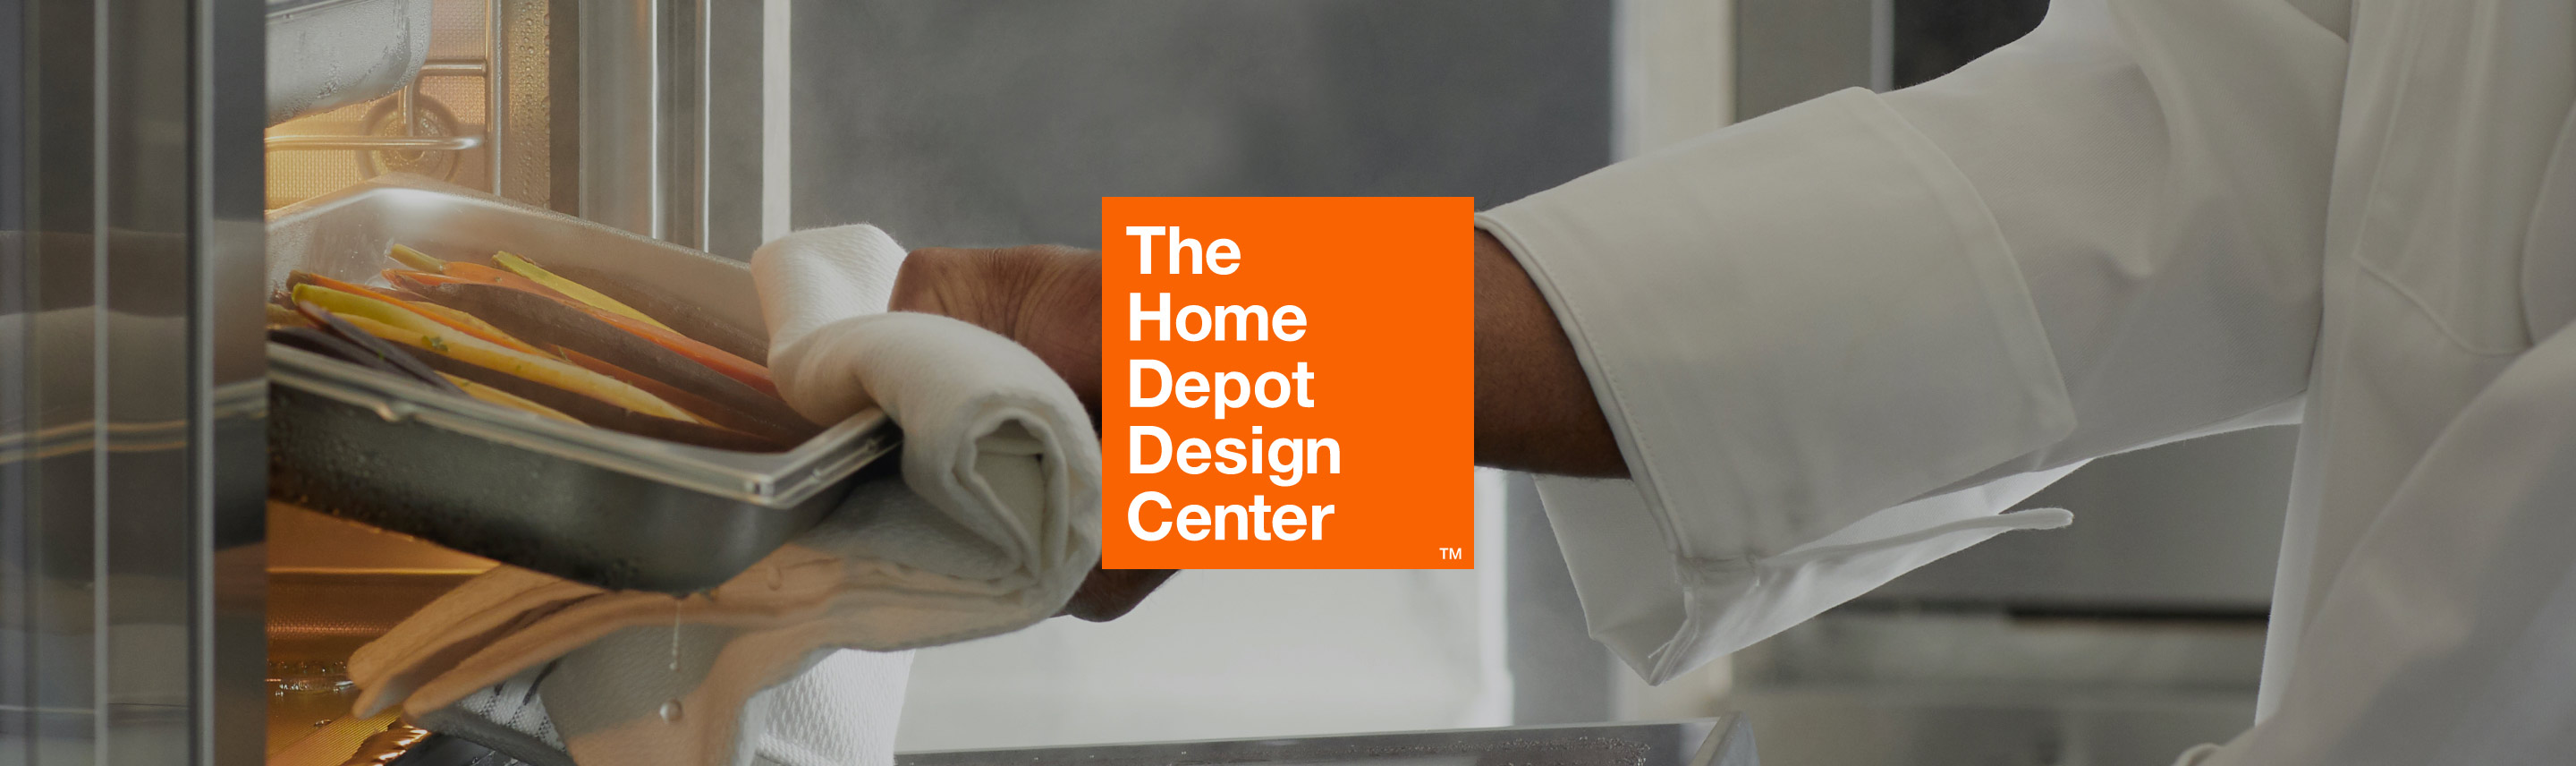 The Home Depot Design Center Events